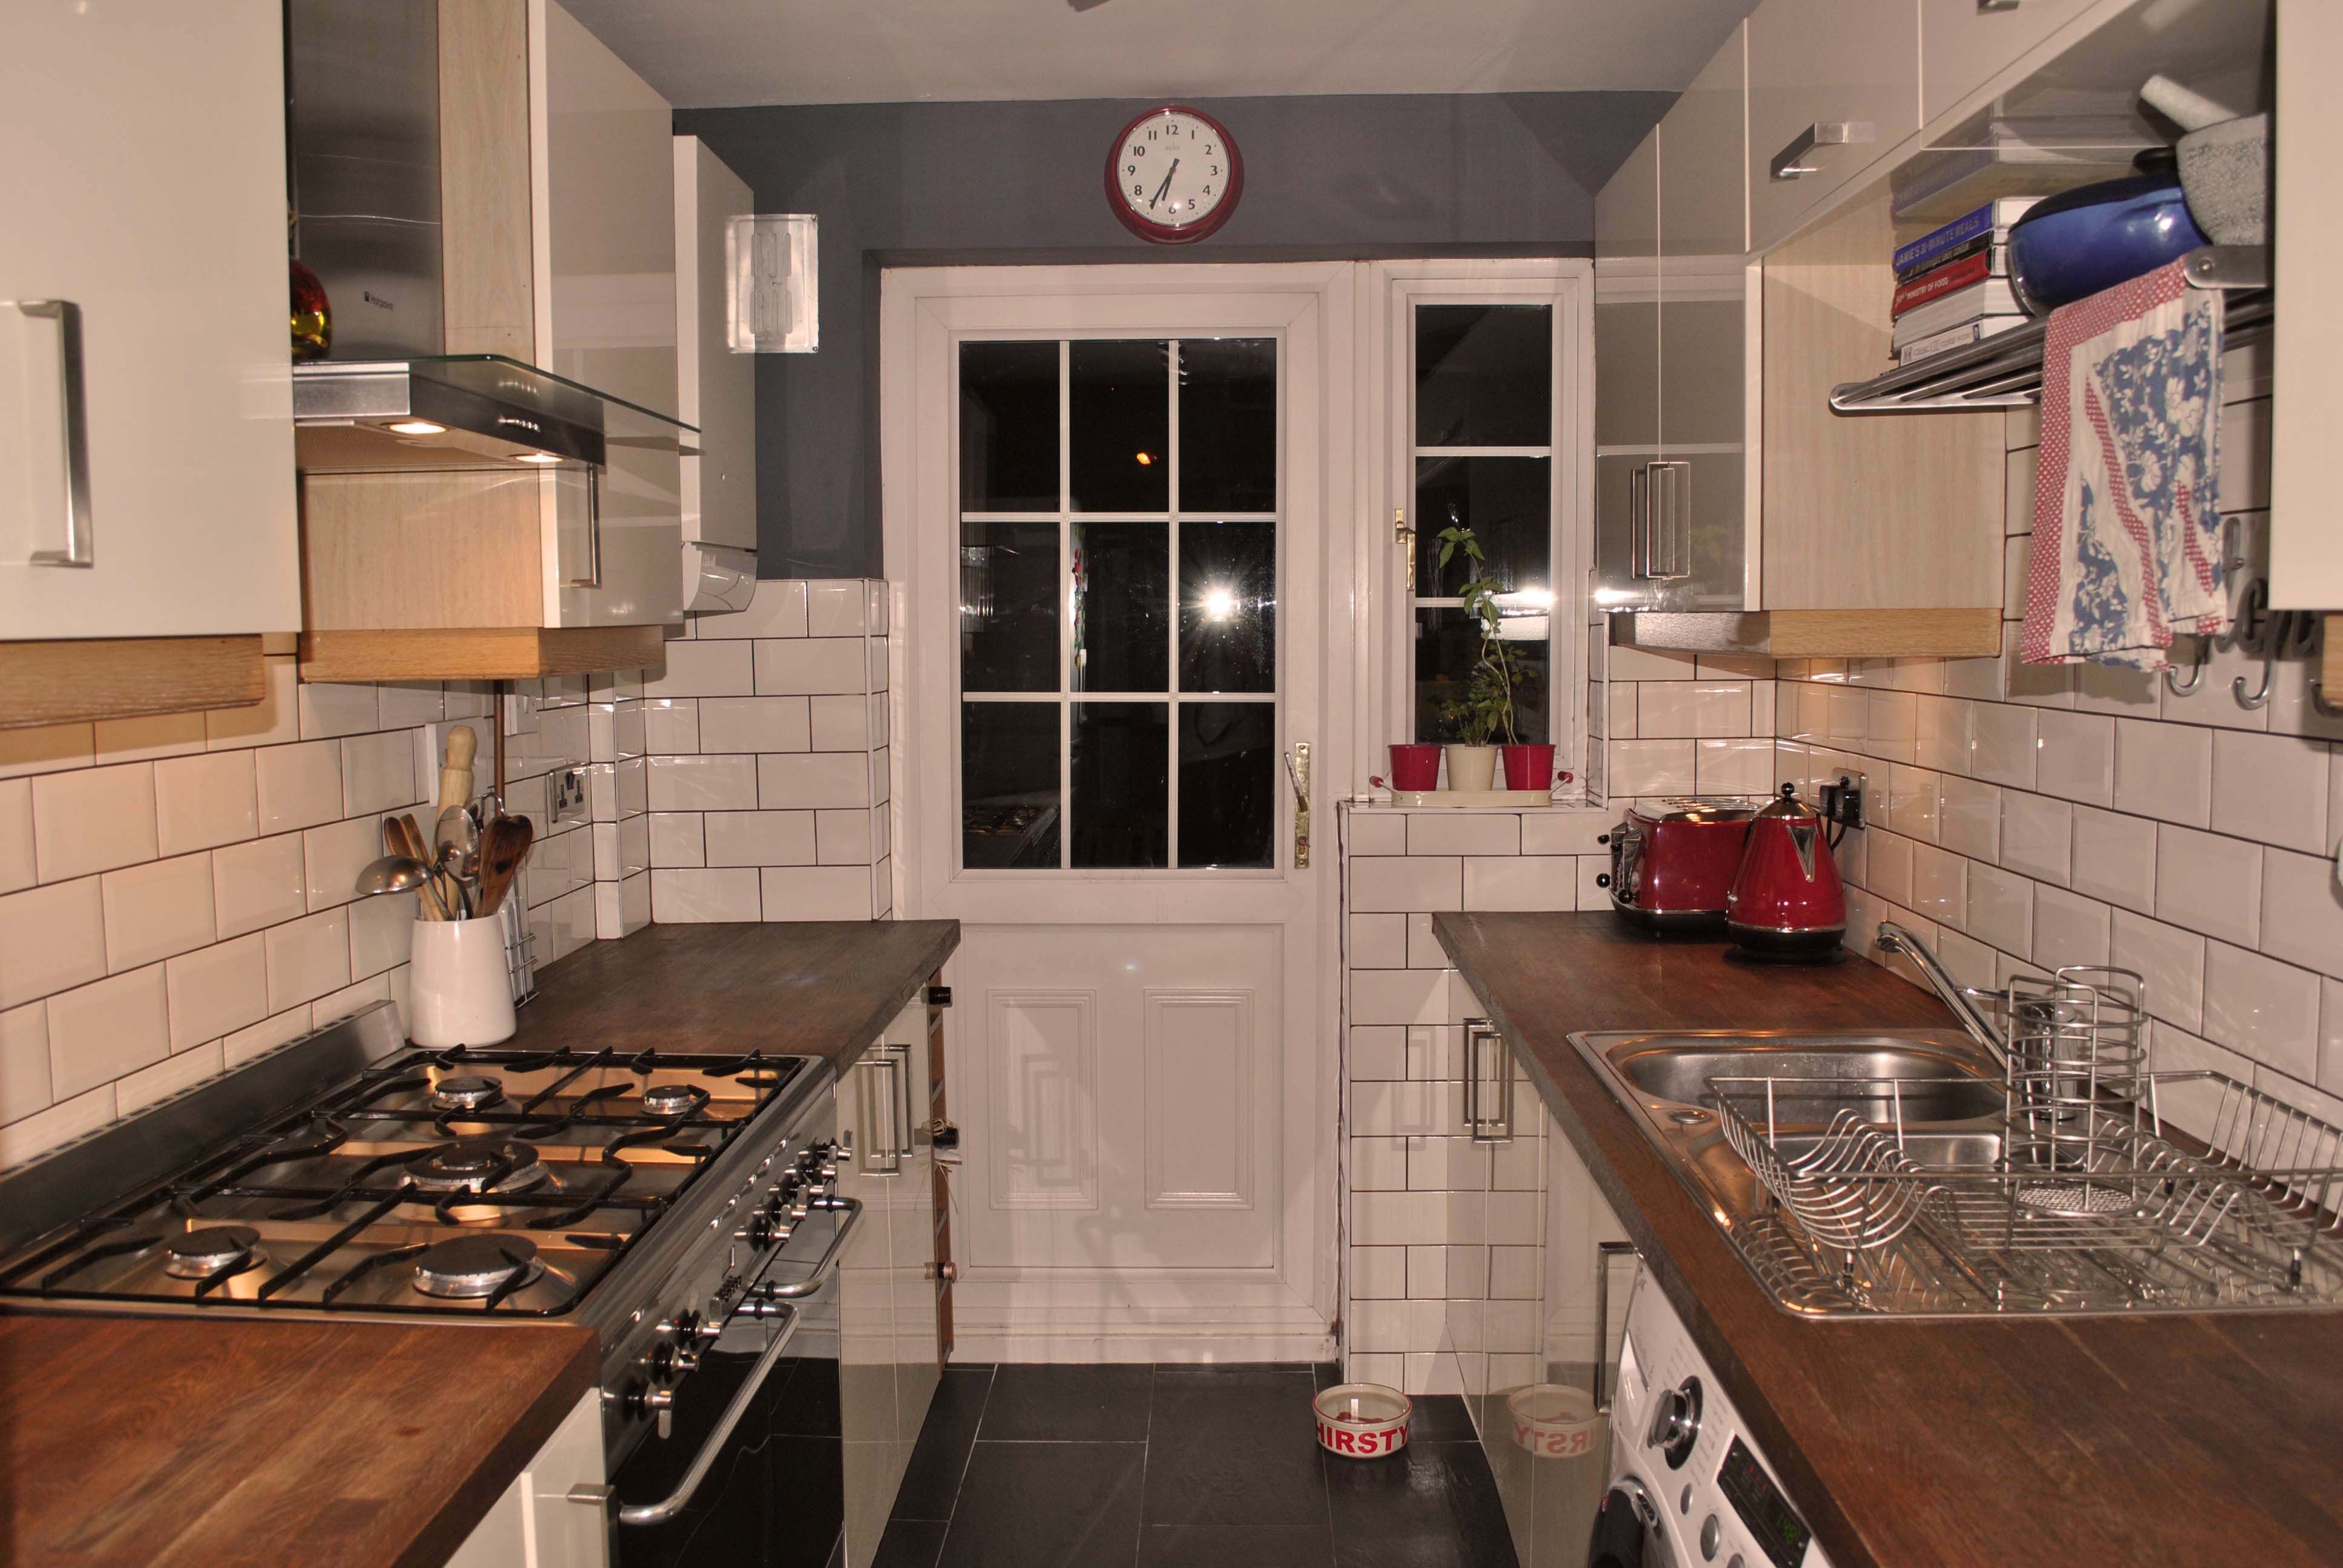 My Kitchen Cream Gloss Doors And Tiles Wooden Tops Slate On The